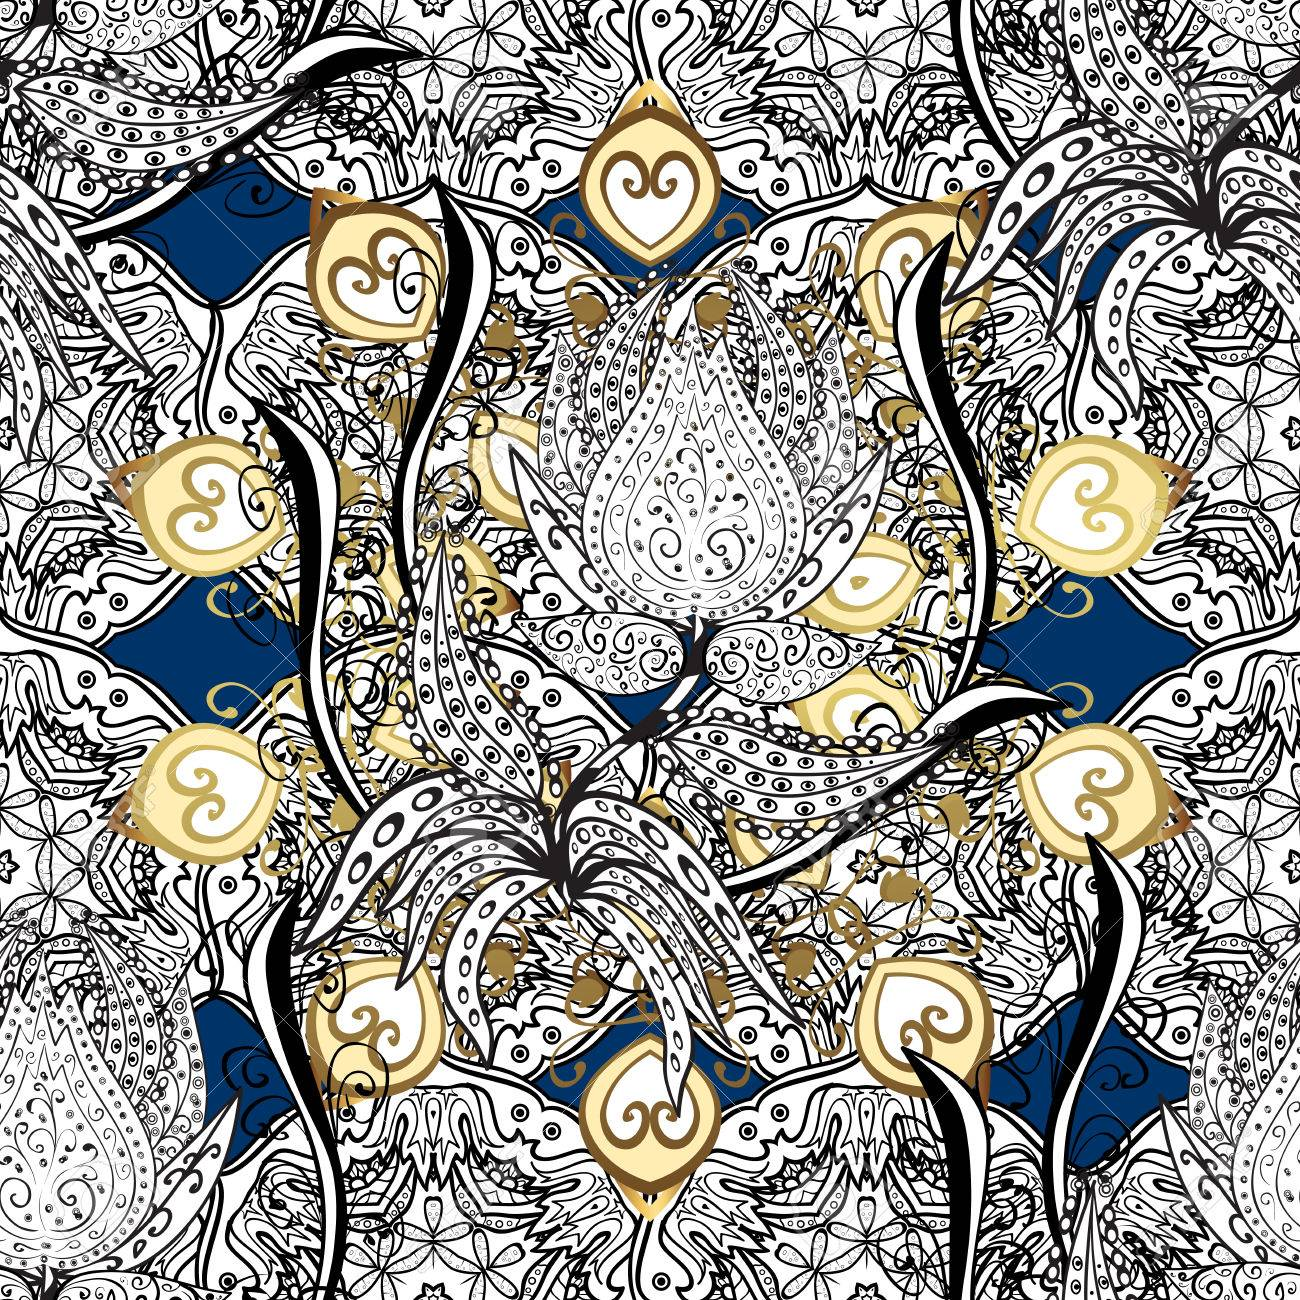 Dark Blue Royal Baroque Damask Seamless Pattern Background Wallpaper Illustration With Decorative Vintage Black Gold